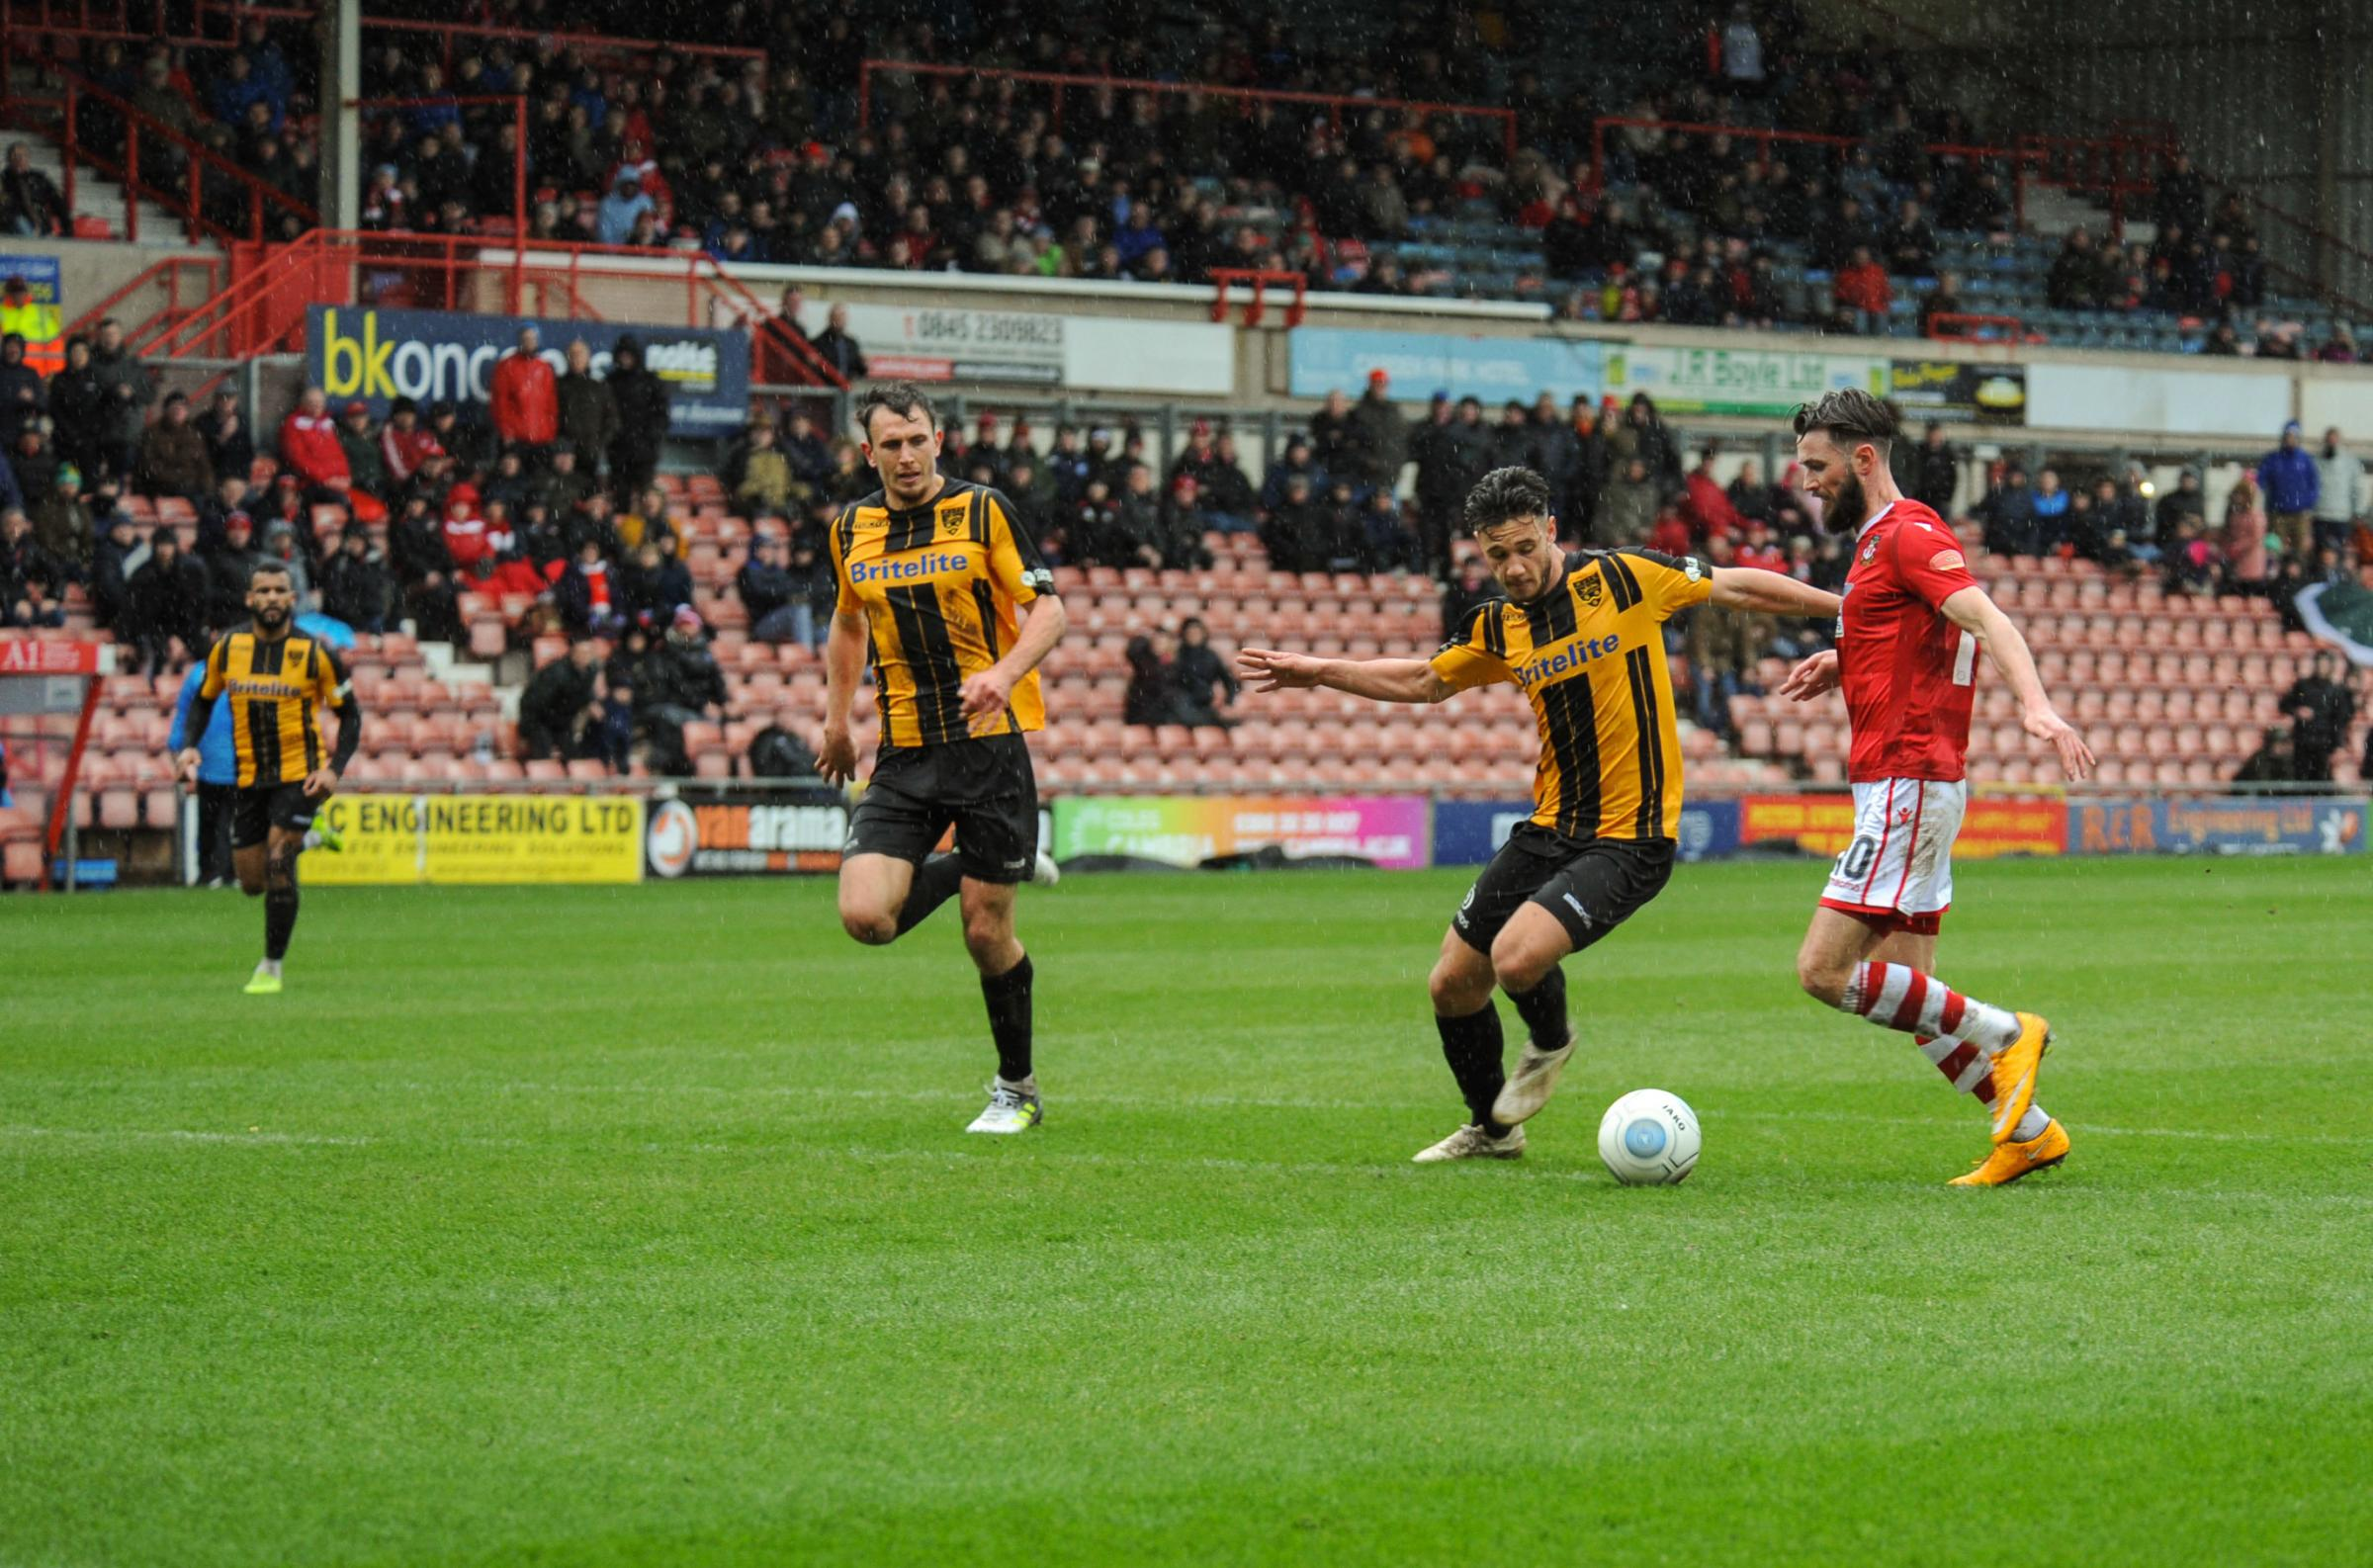 Chris Holroyd says Wrexham AFC must keep believing they can win the title